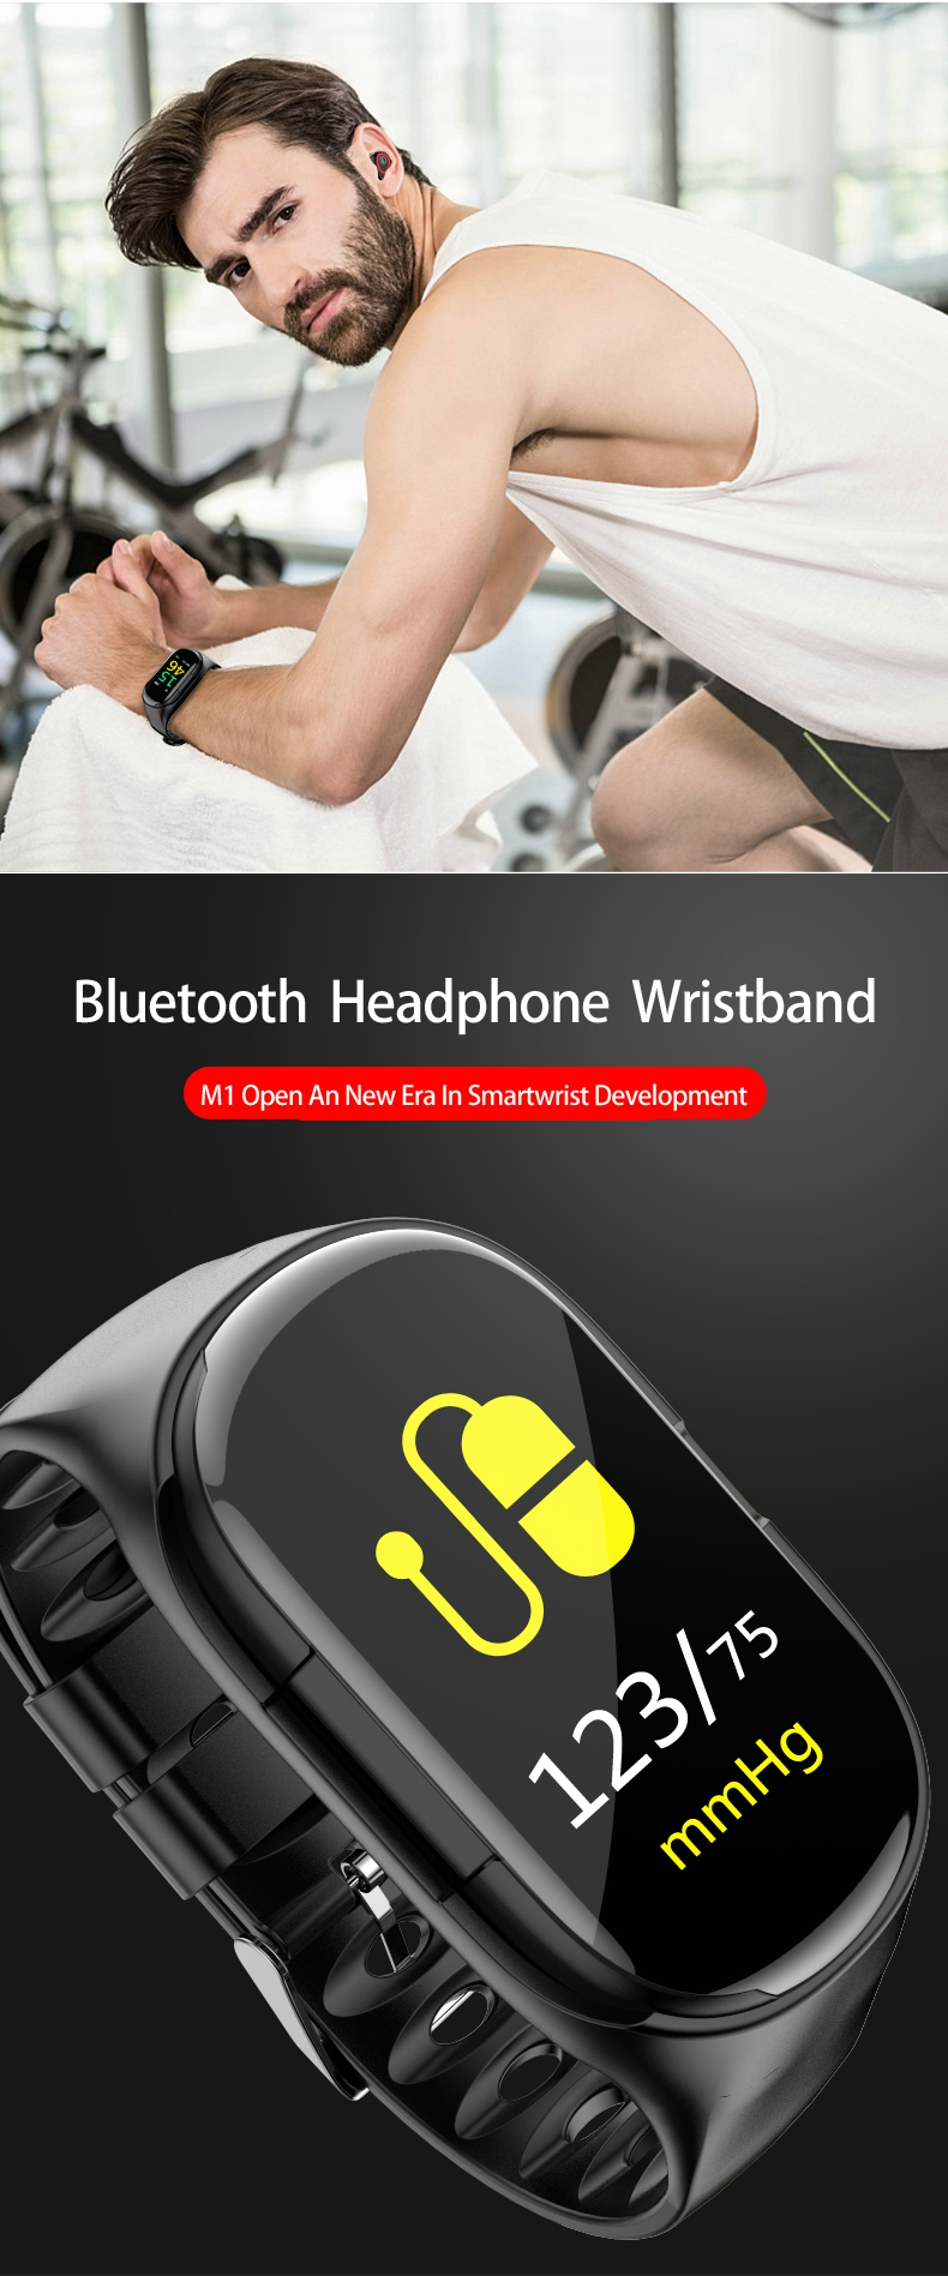 The best smart band